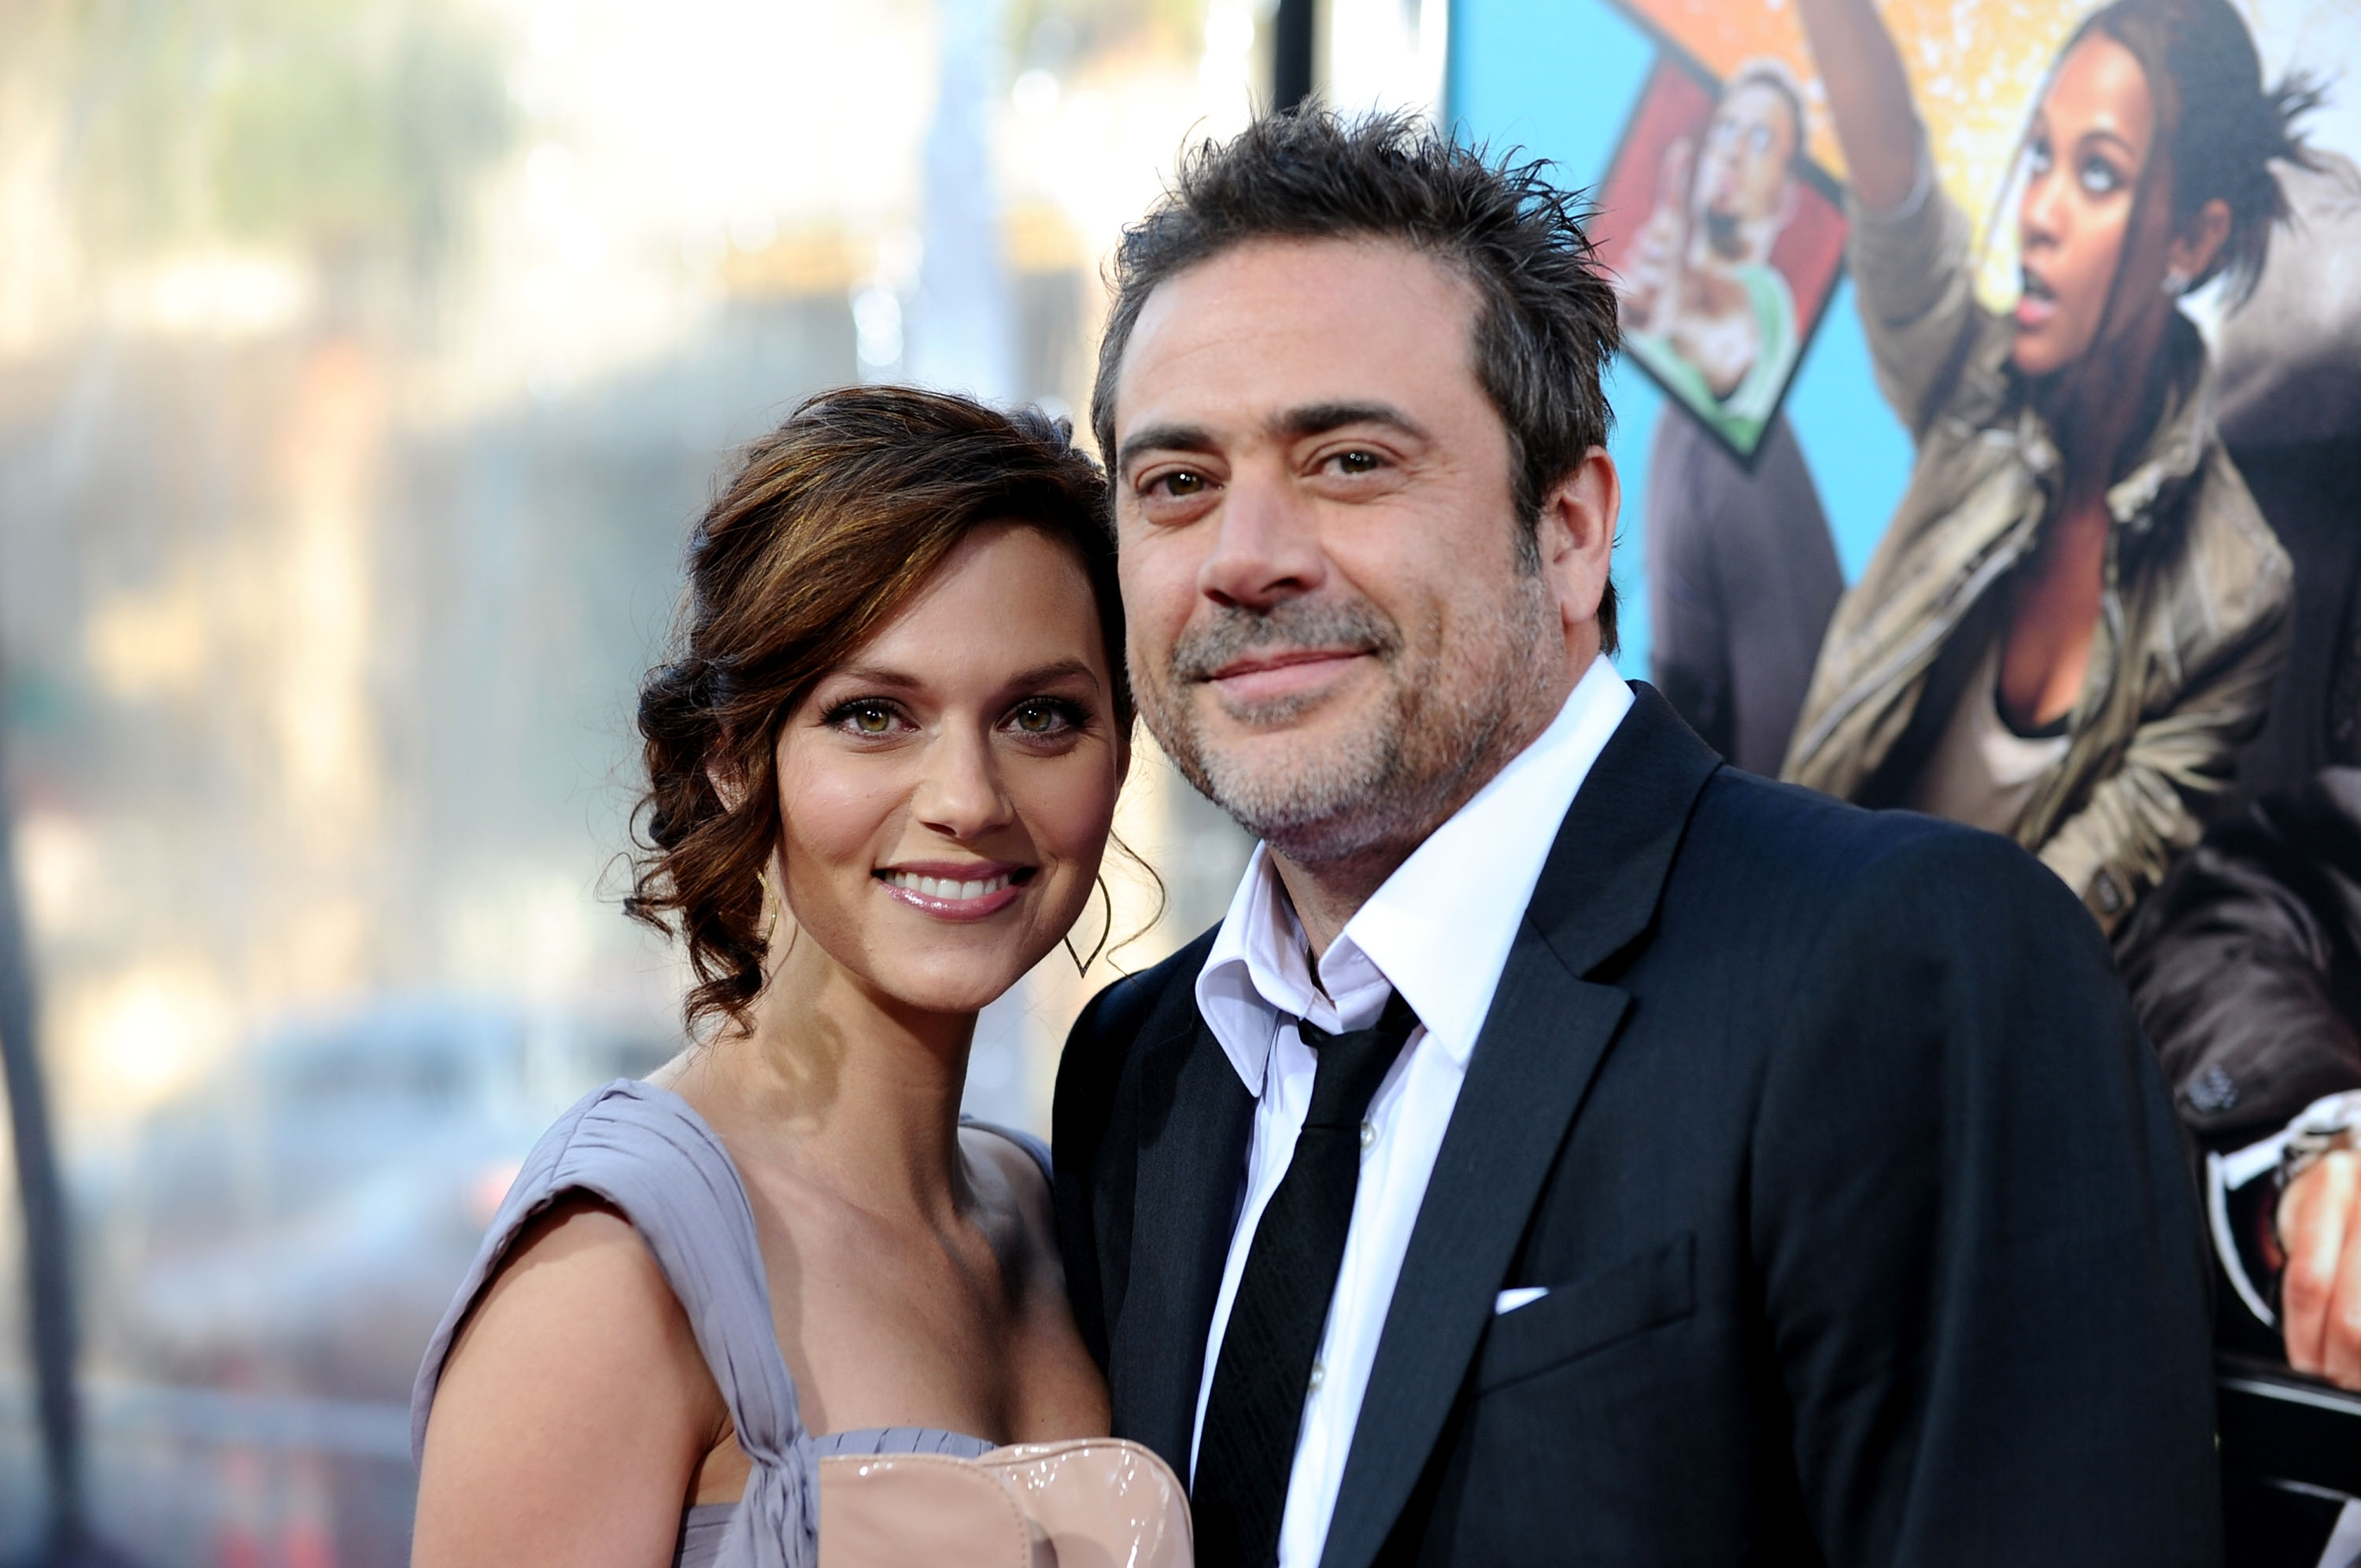 Hilarie Burton and Jeffrey Dean Morgan arrive at Warner Bros. 'The Losers' premiere at Grauman's Chinese Theatre in Los Angeles, Calif., on April 20, 2010